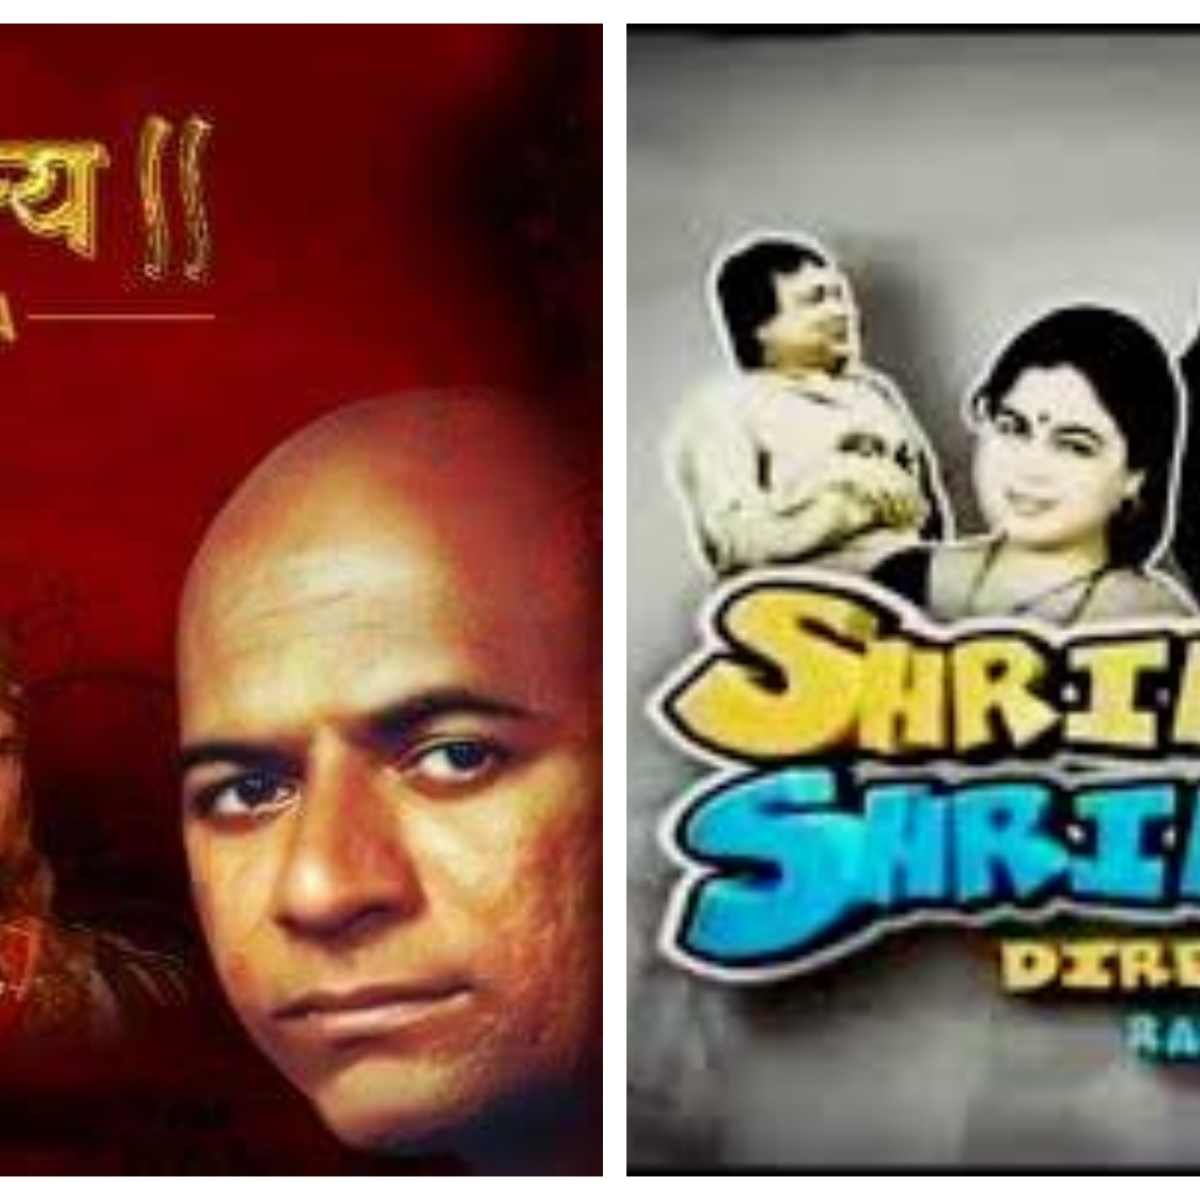 Chanakya and Shriman Shrimati set to make a comeback on Doordarshan